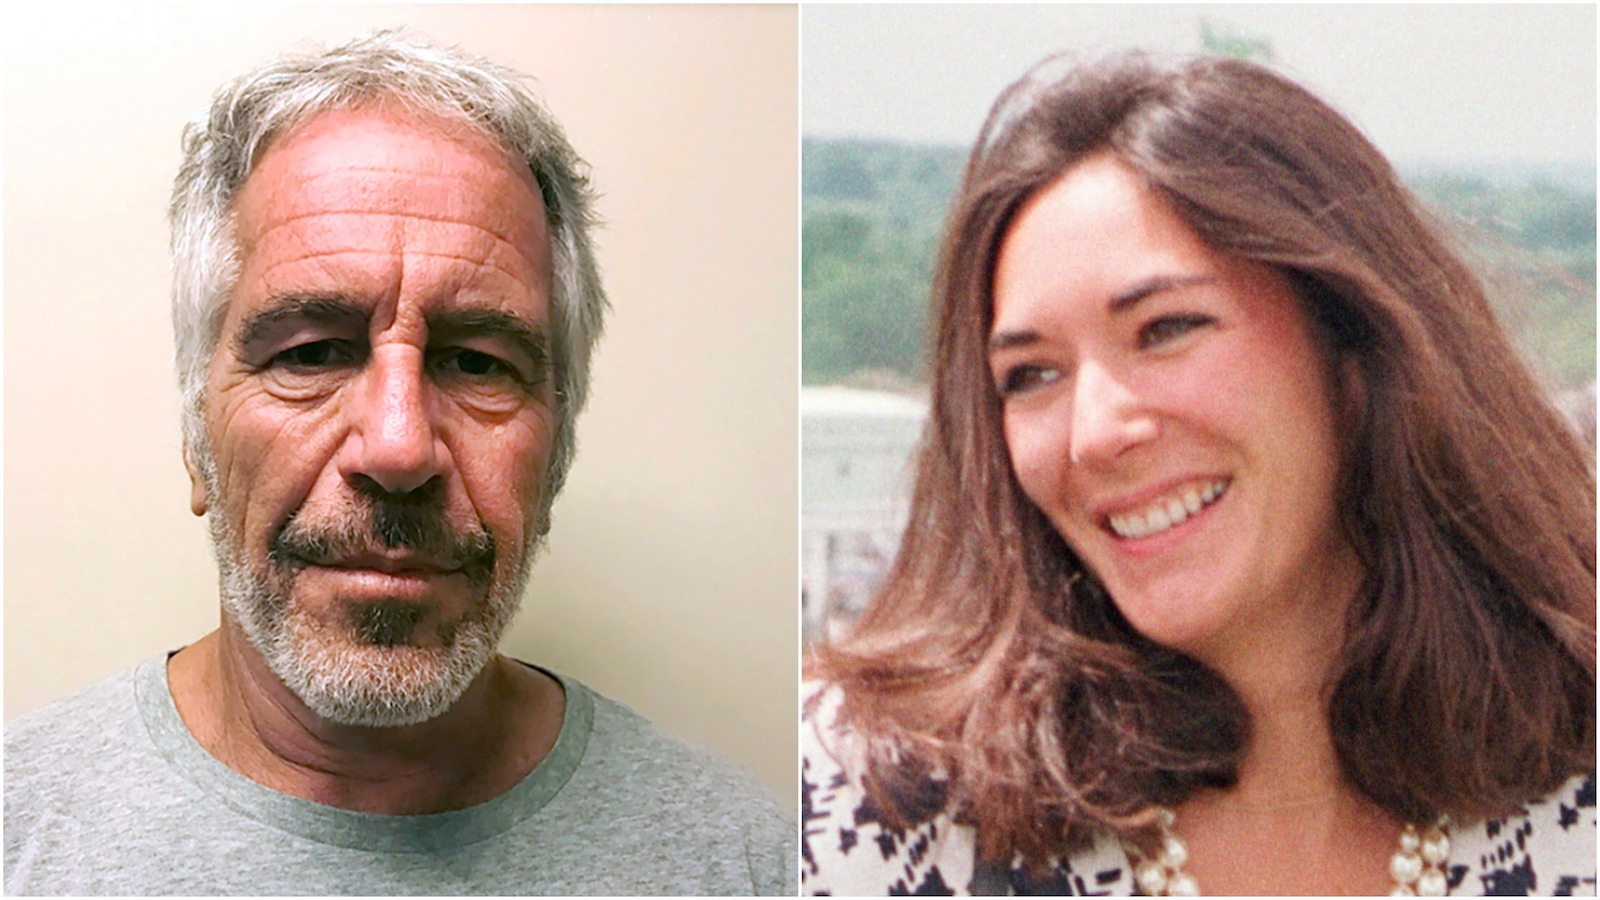 A judge is ordering documents to be unsealed in the Ghislaine Maxwell case, but the real question is how will this add to the Jeffrey Epstein news?